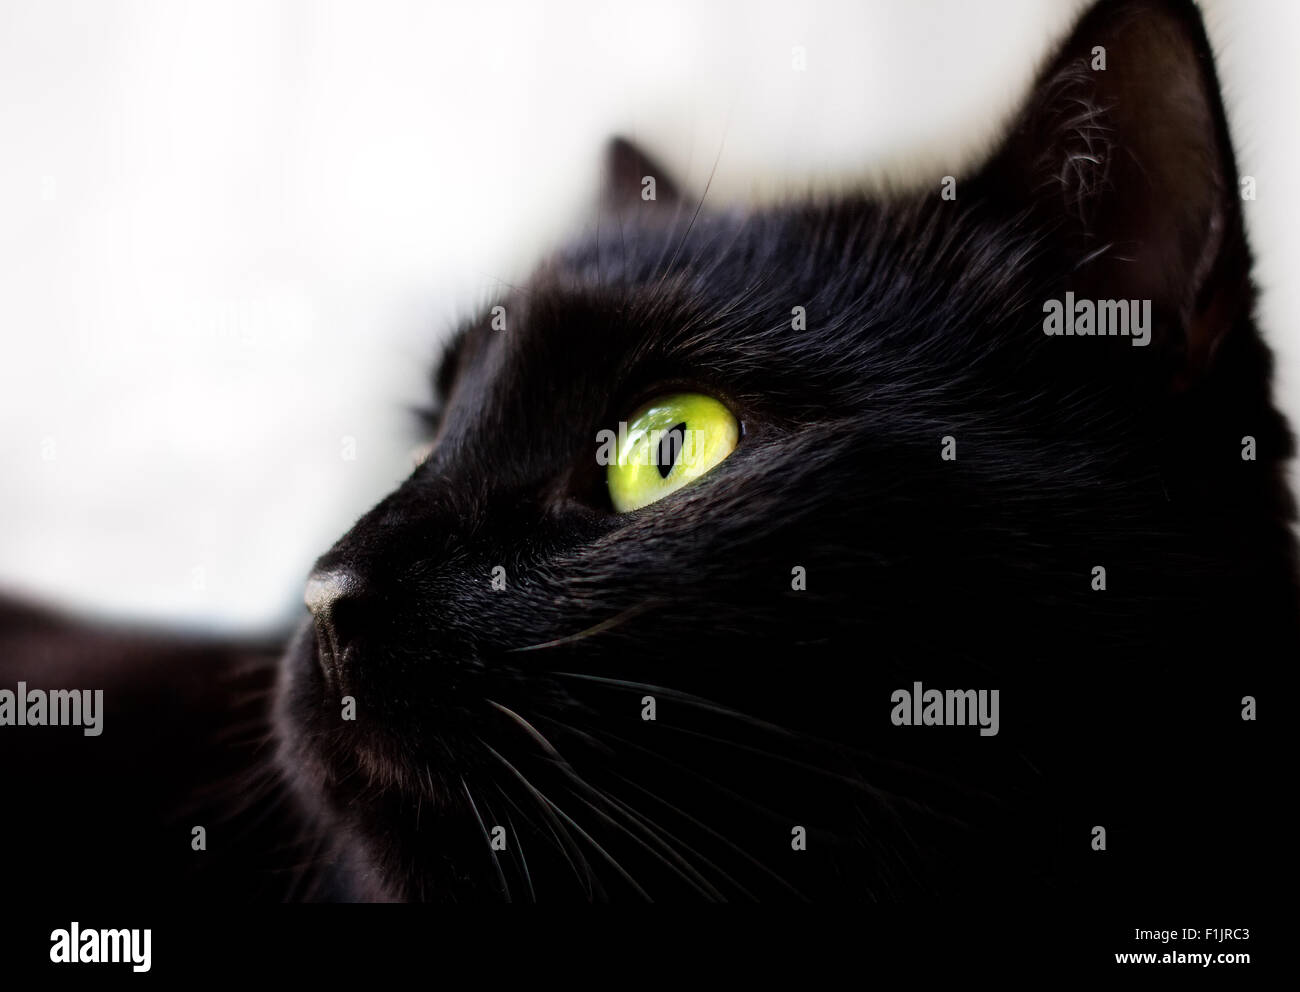 Close up portrait of black cat with green eyes - Stock Image